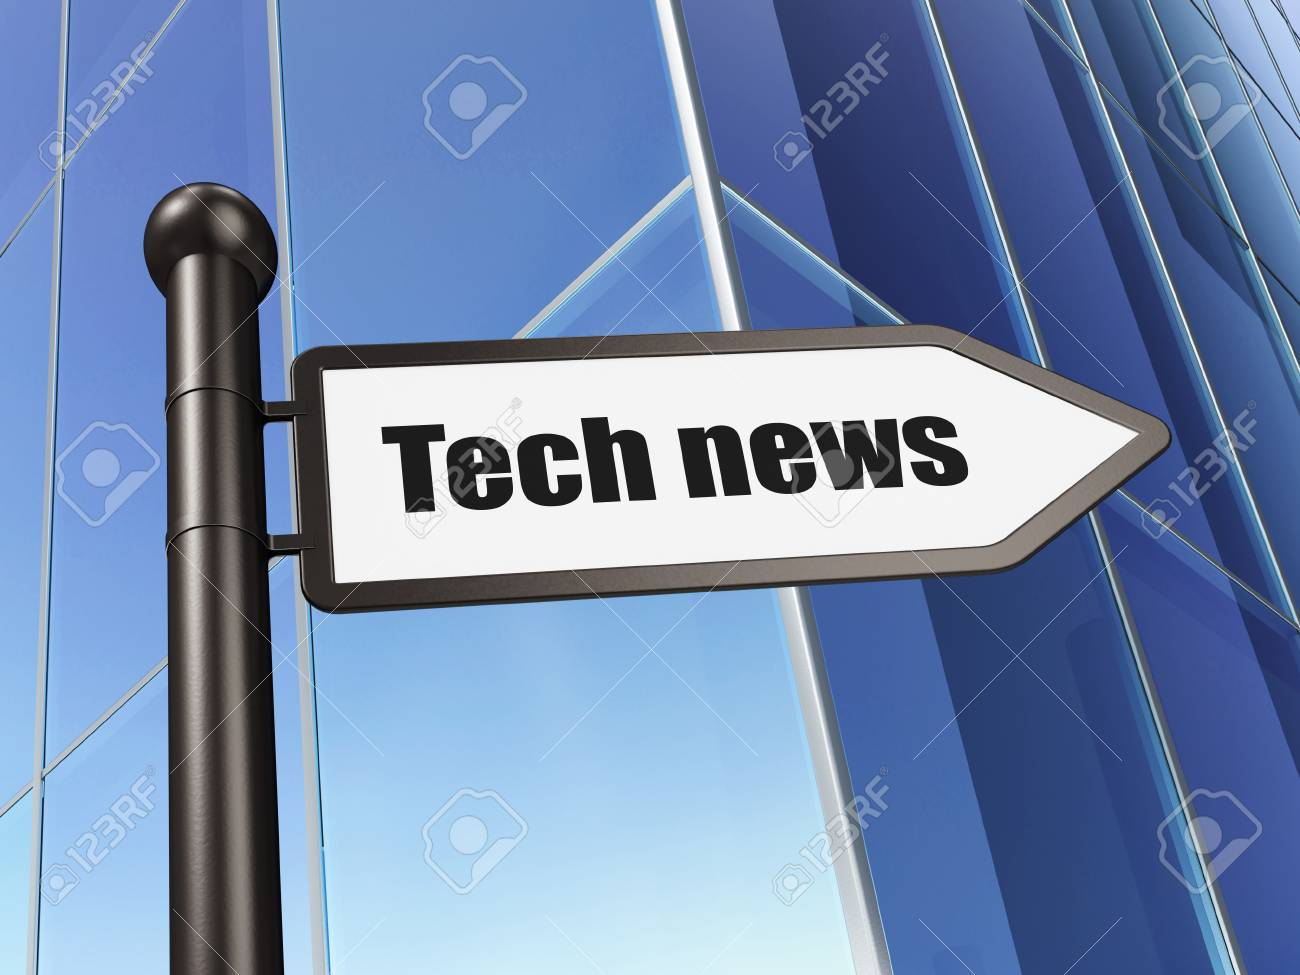 News concept  Tech News on Building background, 3d render Stock Photo - 19490787